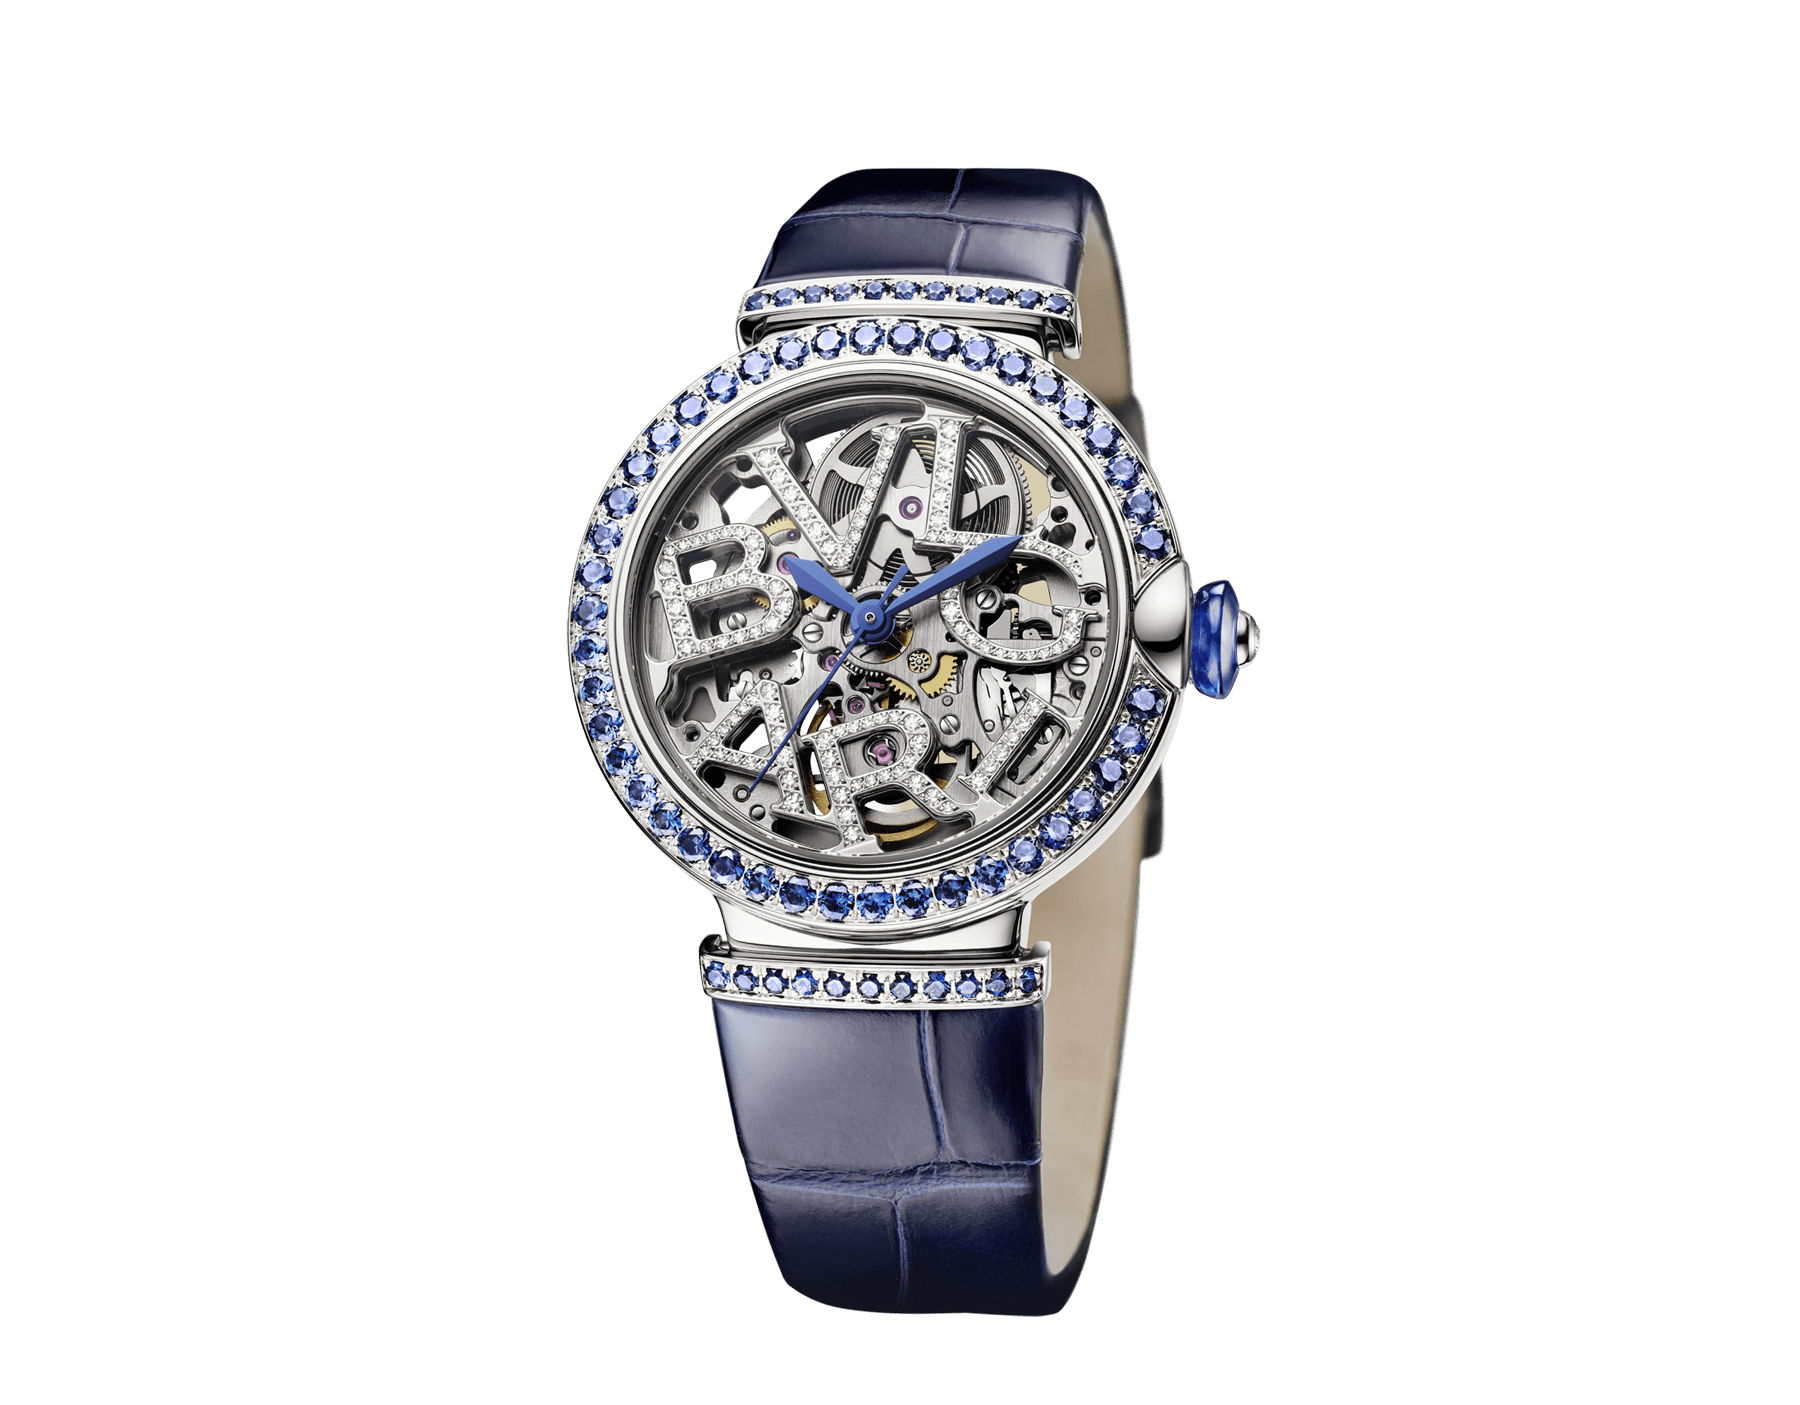 LVCEA Skeleton watch with mechanical movement, automatic winding and skeleton execution, 18 kt white gold case and links set with round brilliant-cut sapphires, 18 kt white gold openwork BVLGARI logo dial set with round brilliant-cut diamonds, blue lacquered hands and blue alligator bracelet 103091 image 2